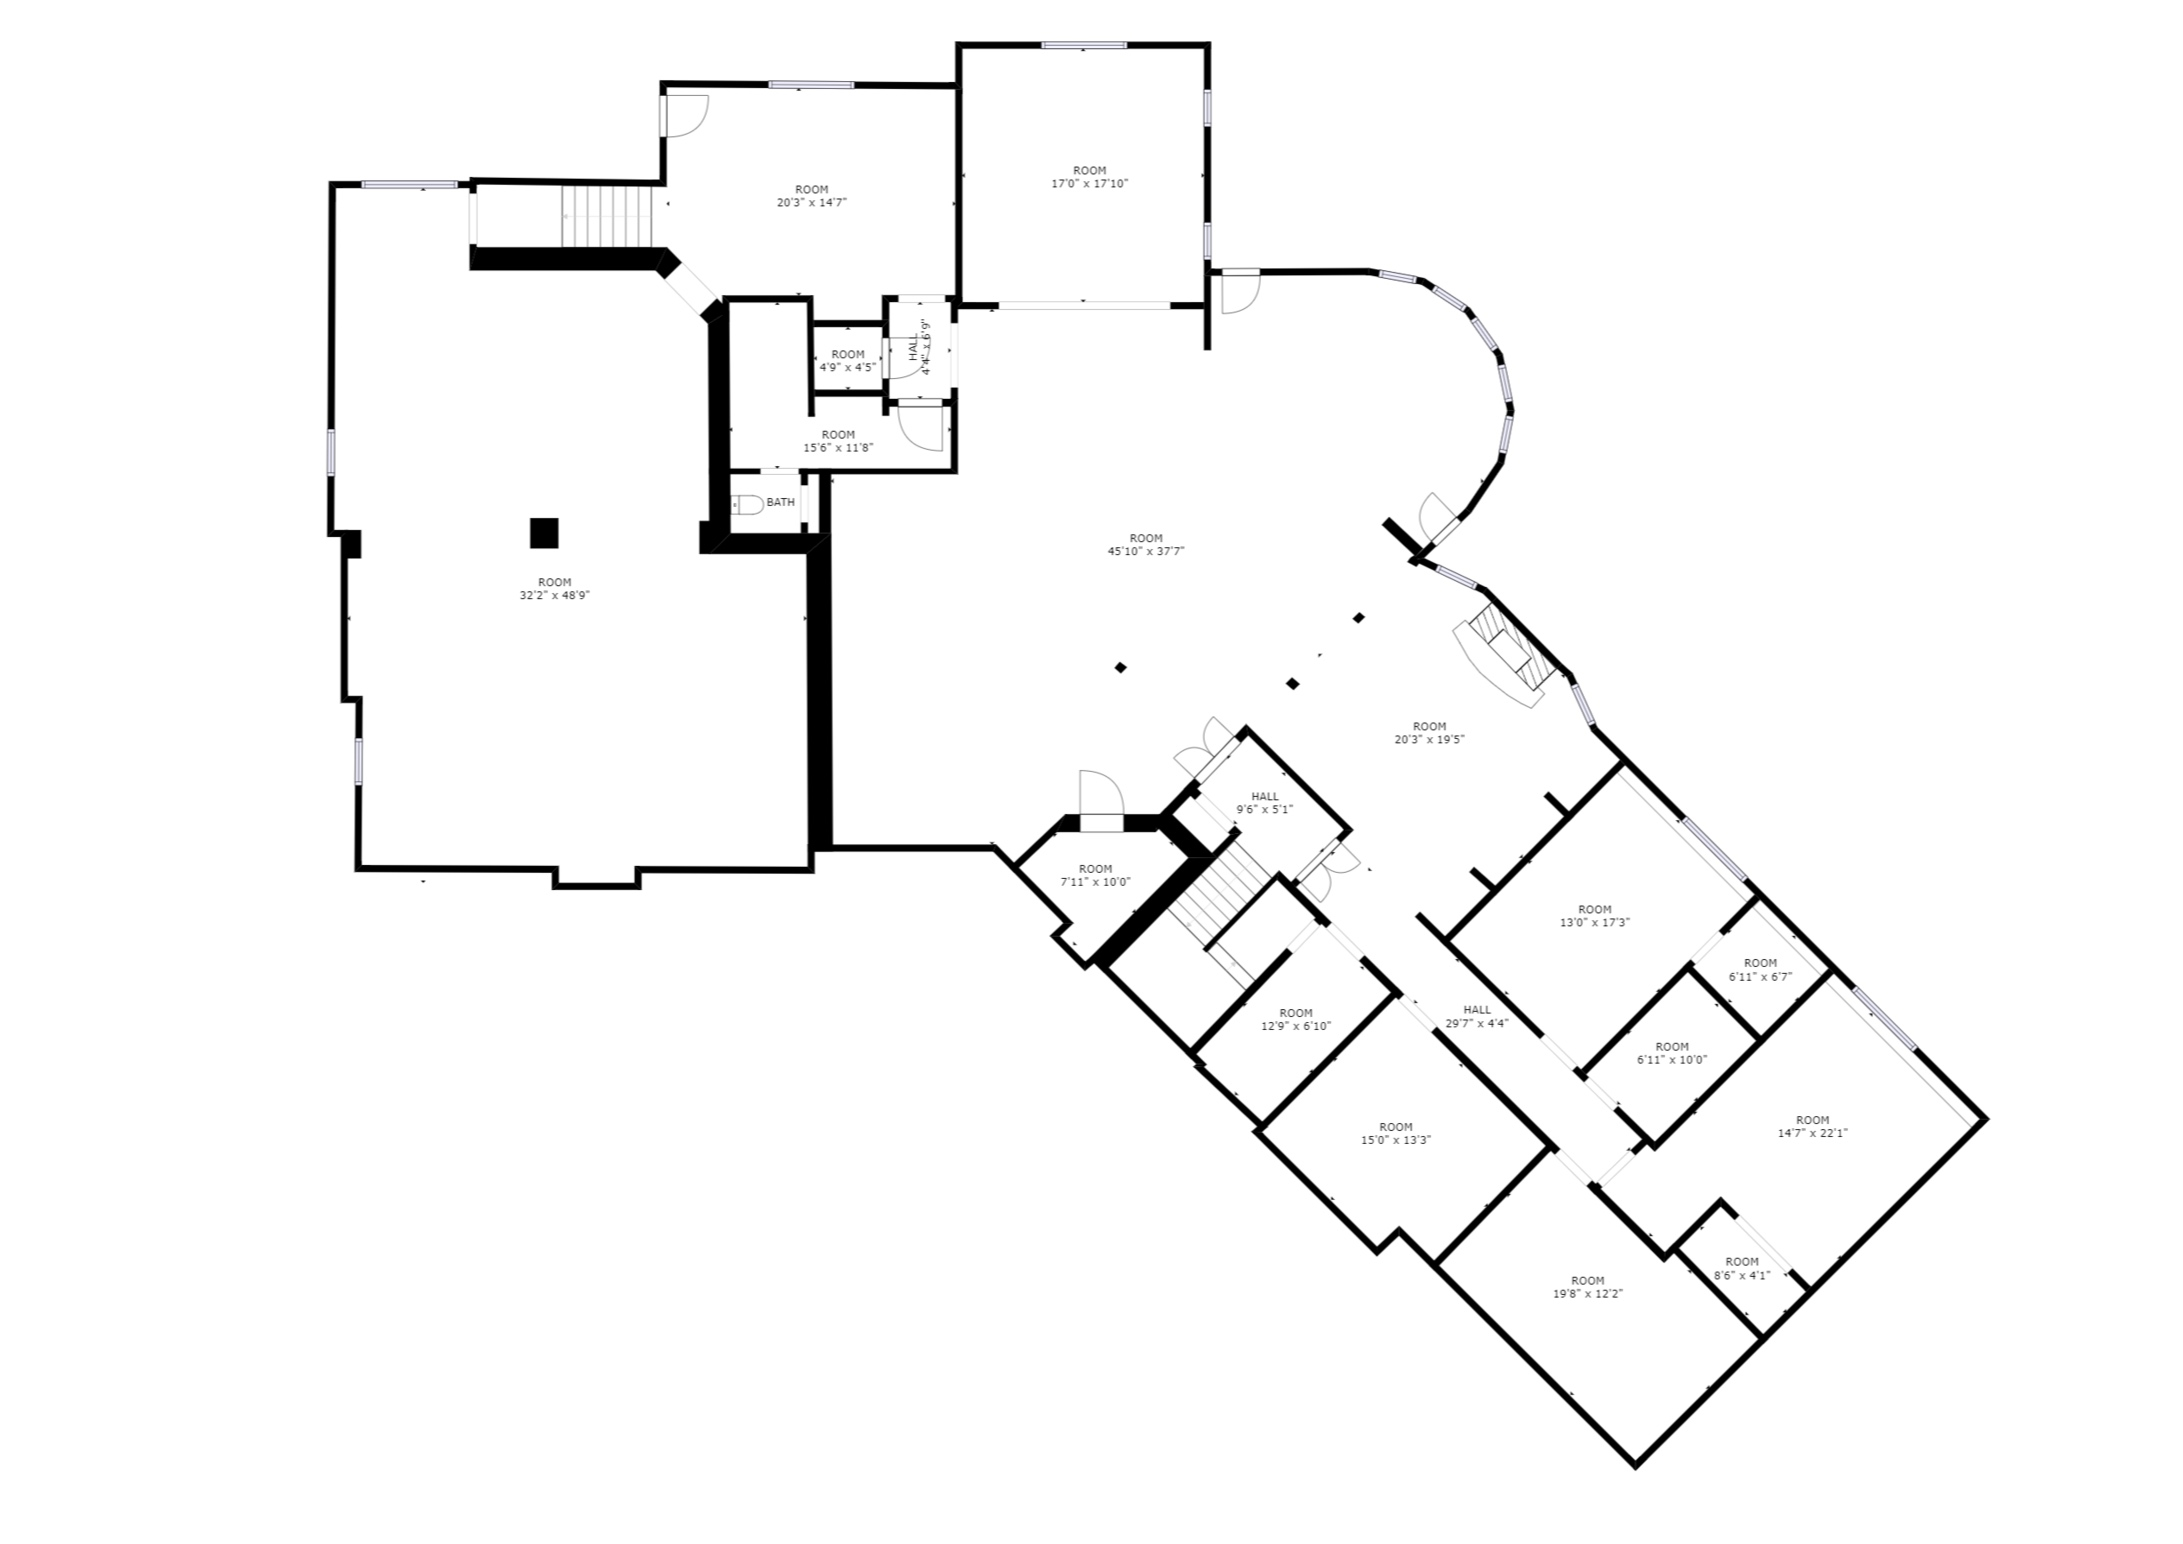 Basement – sizes and dimensions are approximate. Actual may vary.